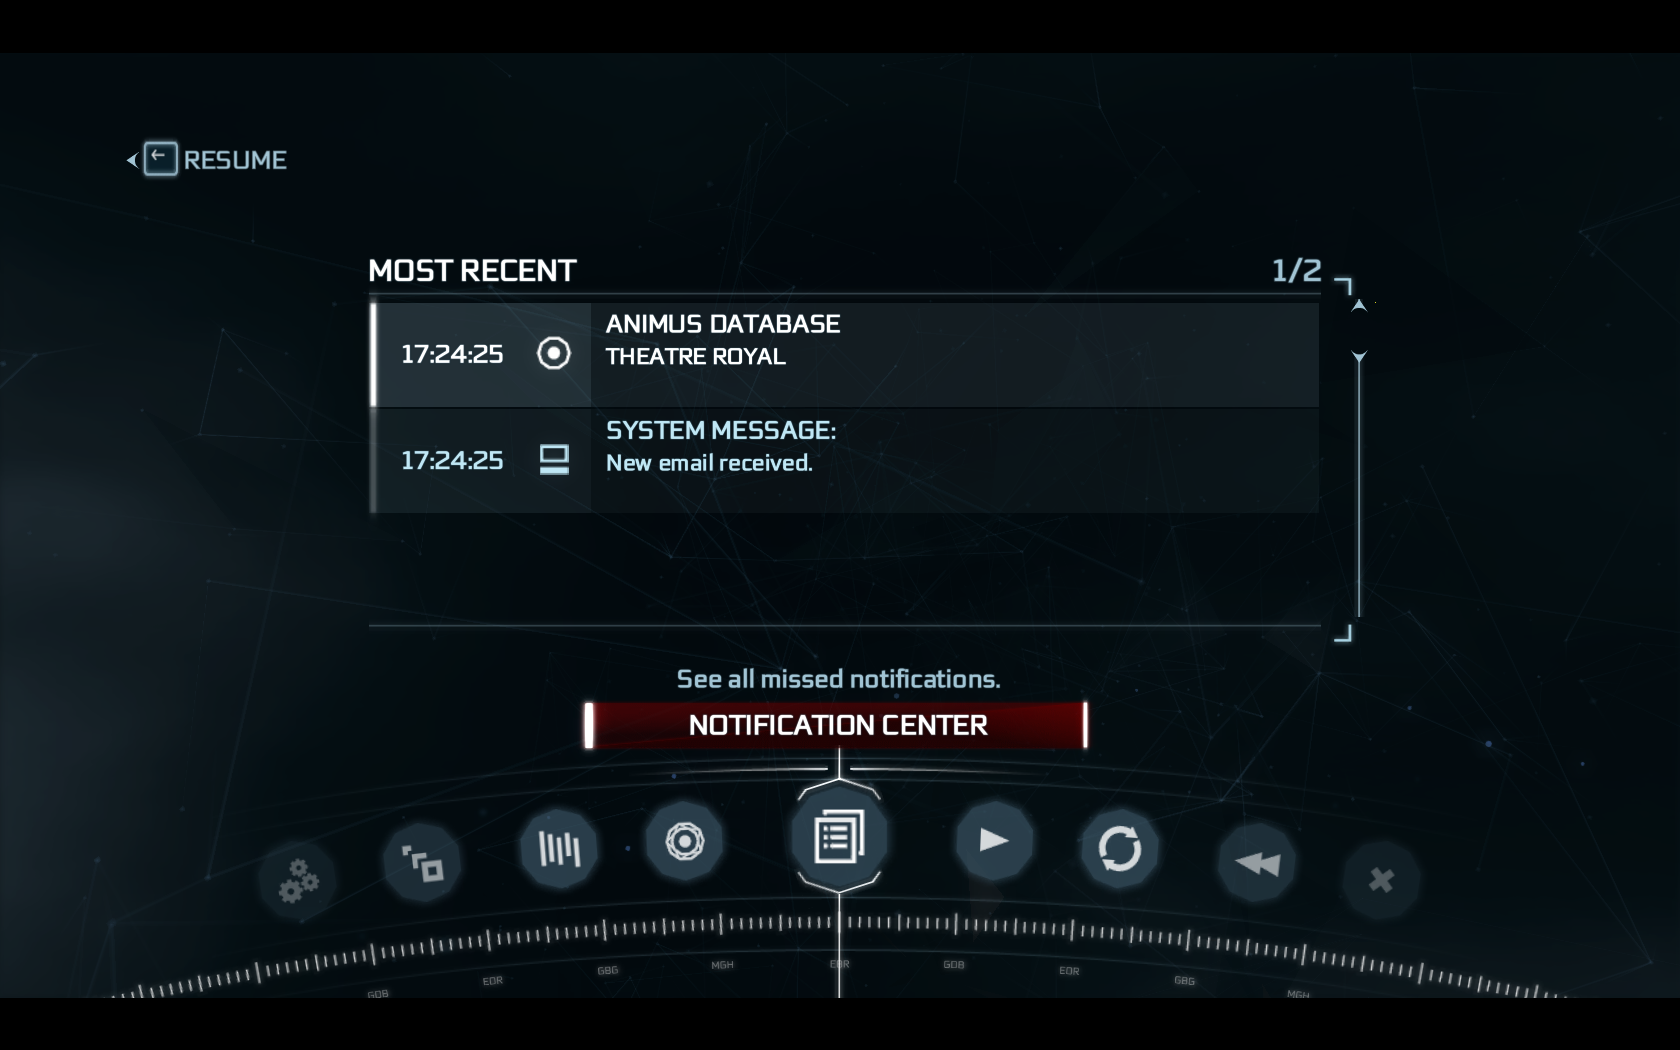 Rage3d Com Assassin S Creed 3 Pc Technical Review Controls Ui Extra Features Conclusion